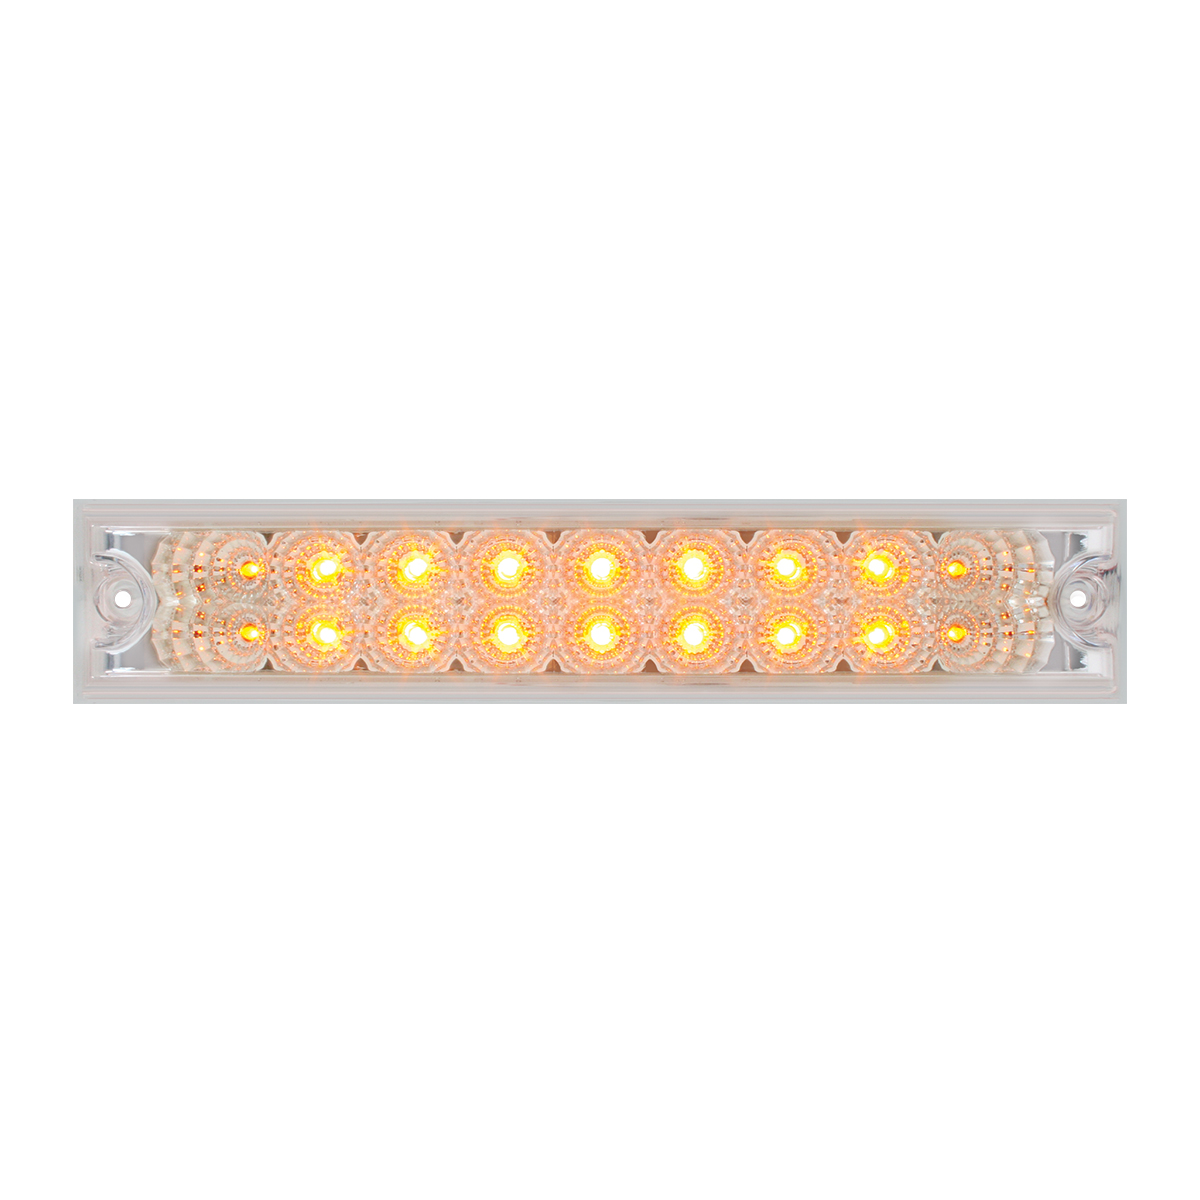 "76481 10"" Spyder LED Light Bar in Clear Lens"